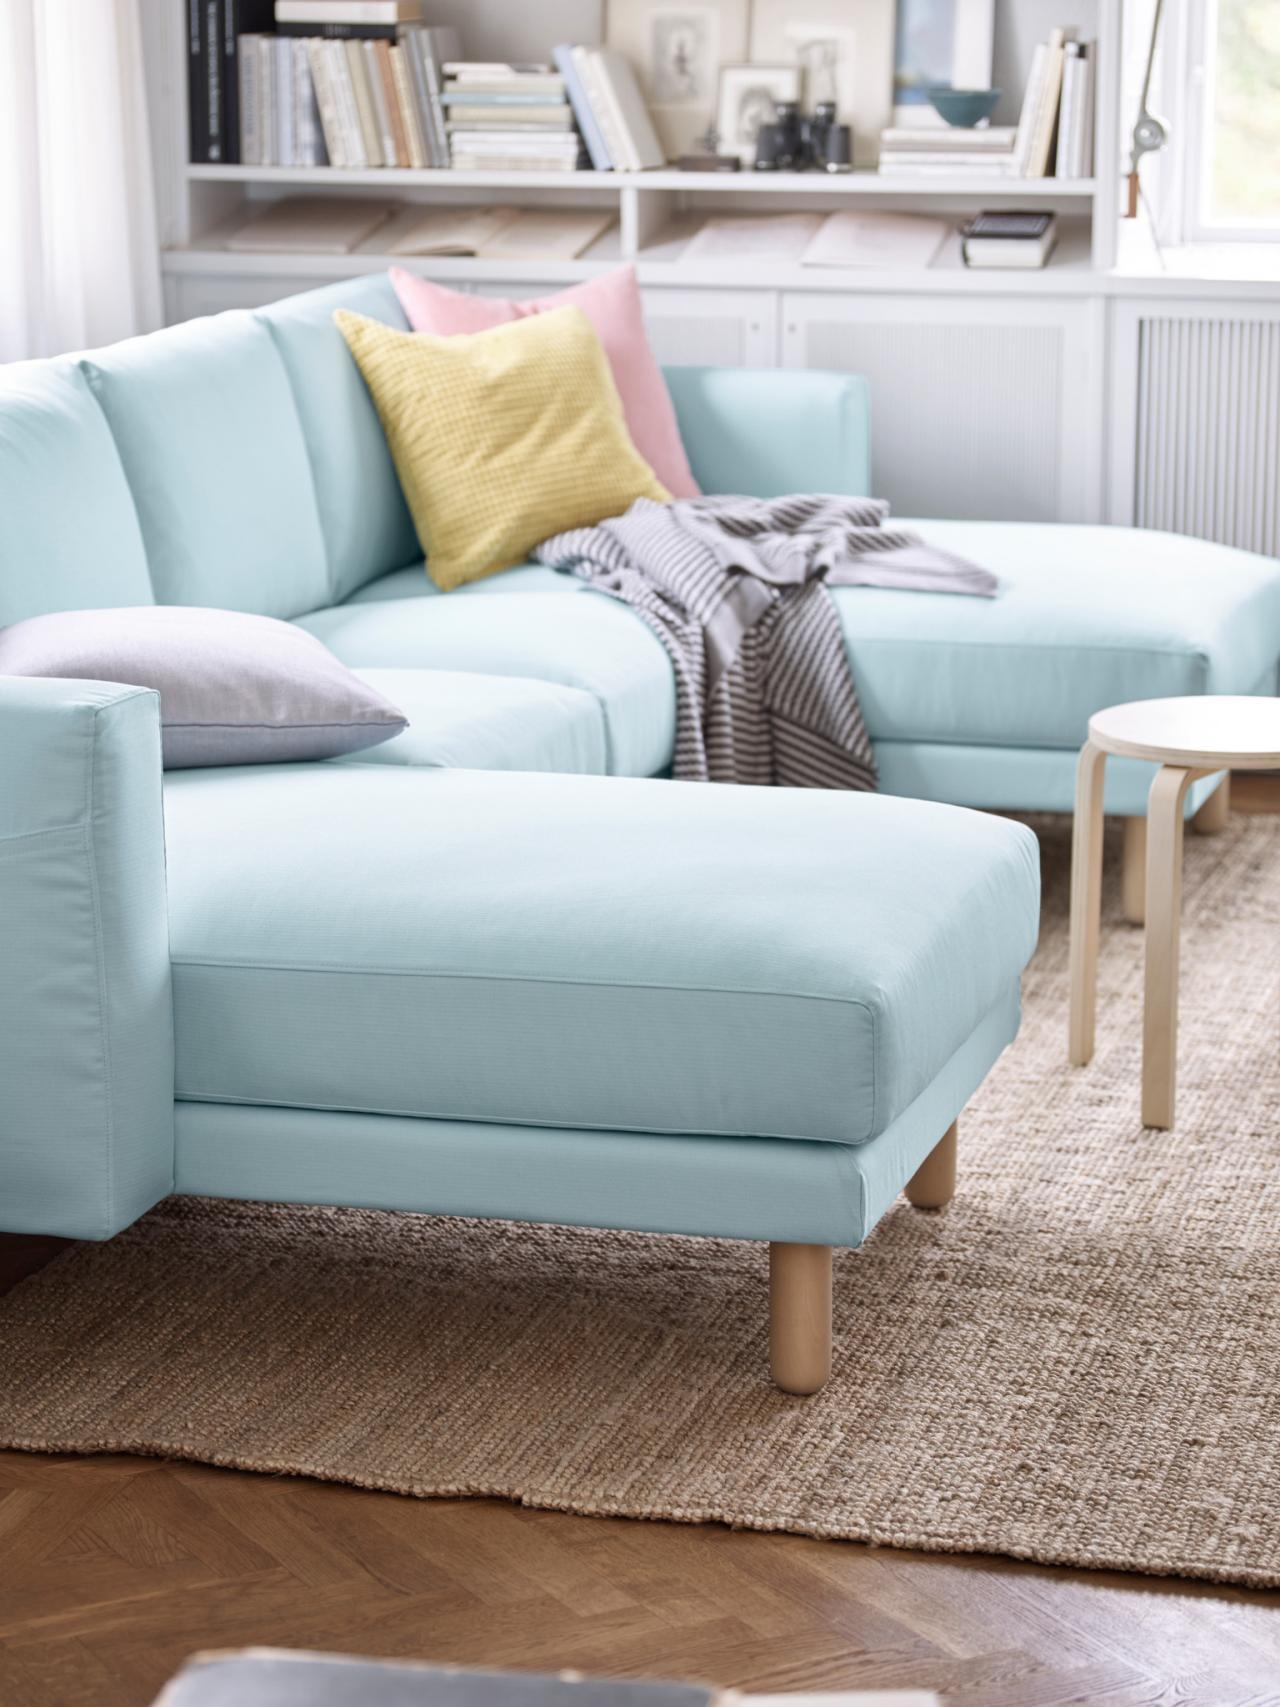 5 Apartment Sized Sofas That Are Lifesavers | Hgtv's Decorating With Regard To Apartment Sectional With Chaise (Image 1 of 15)